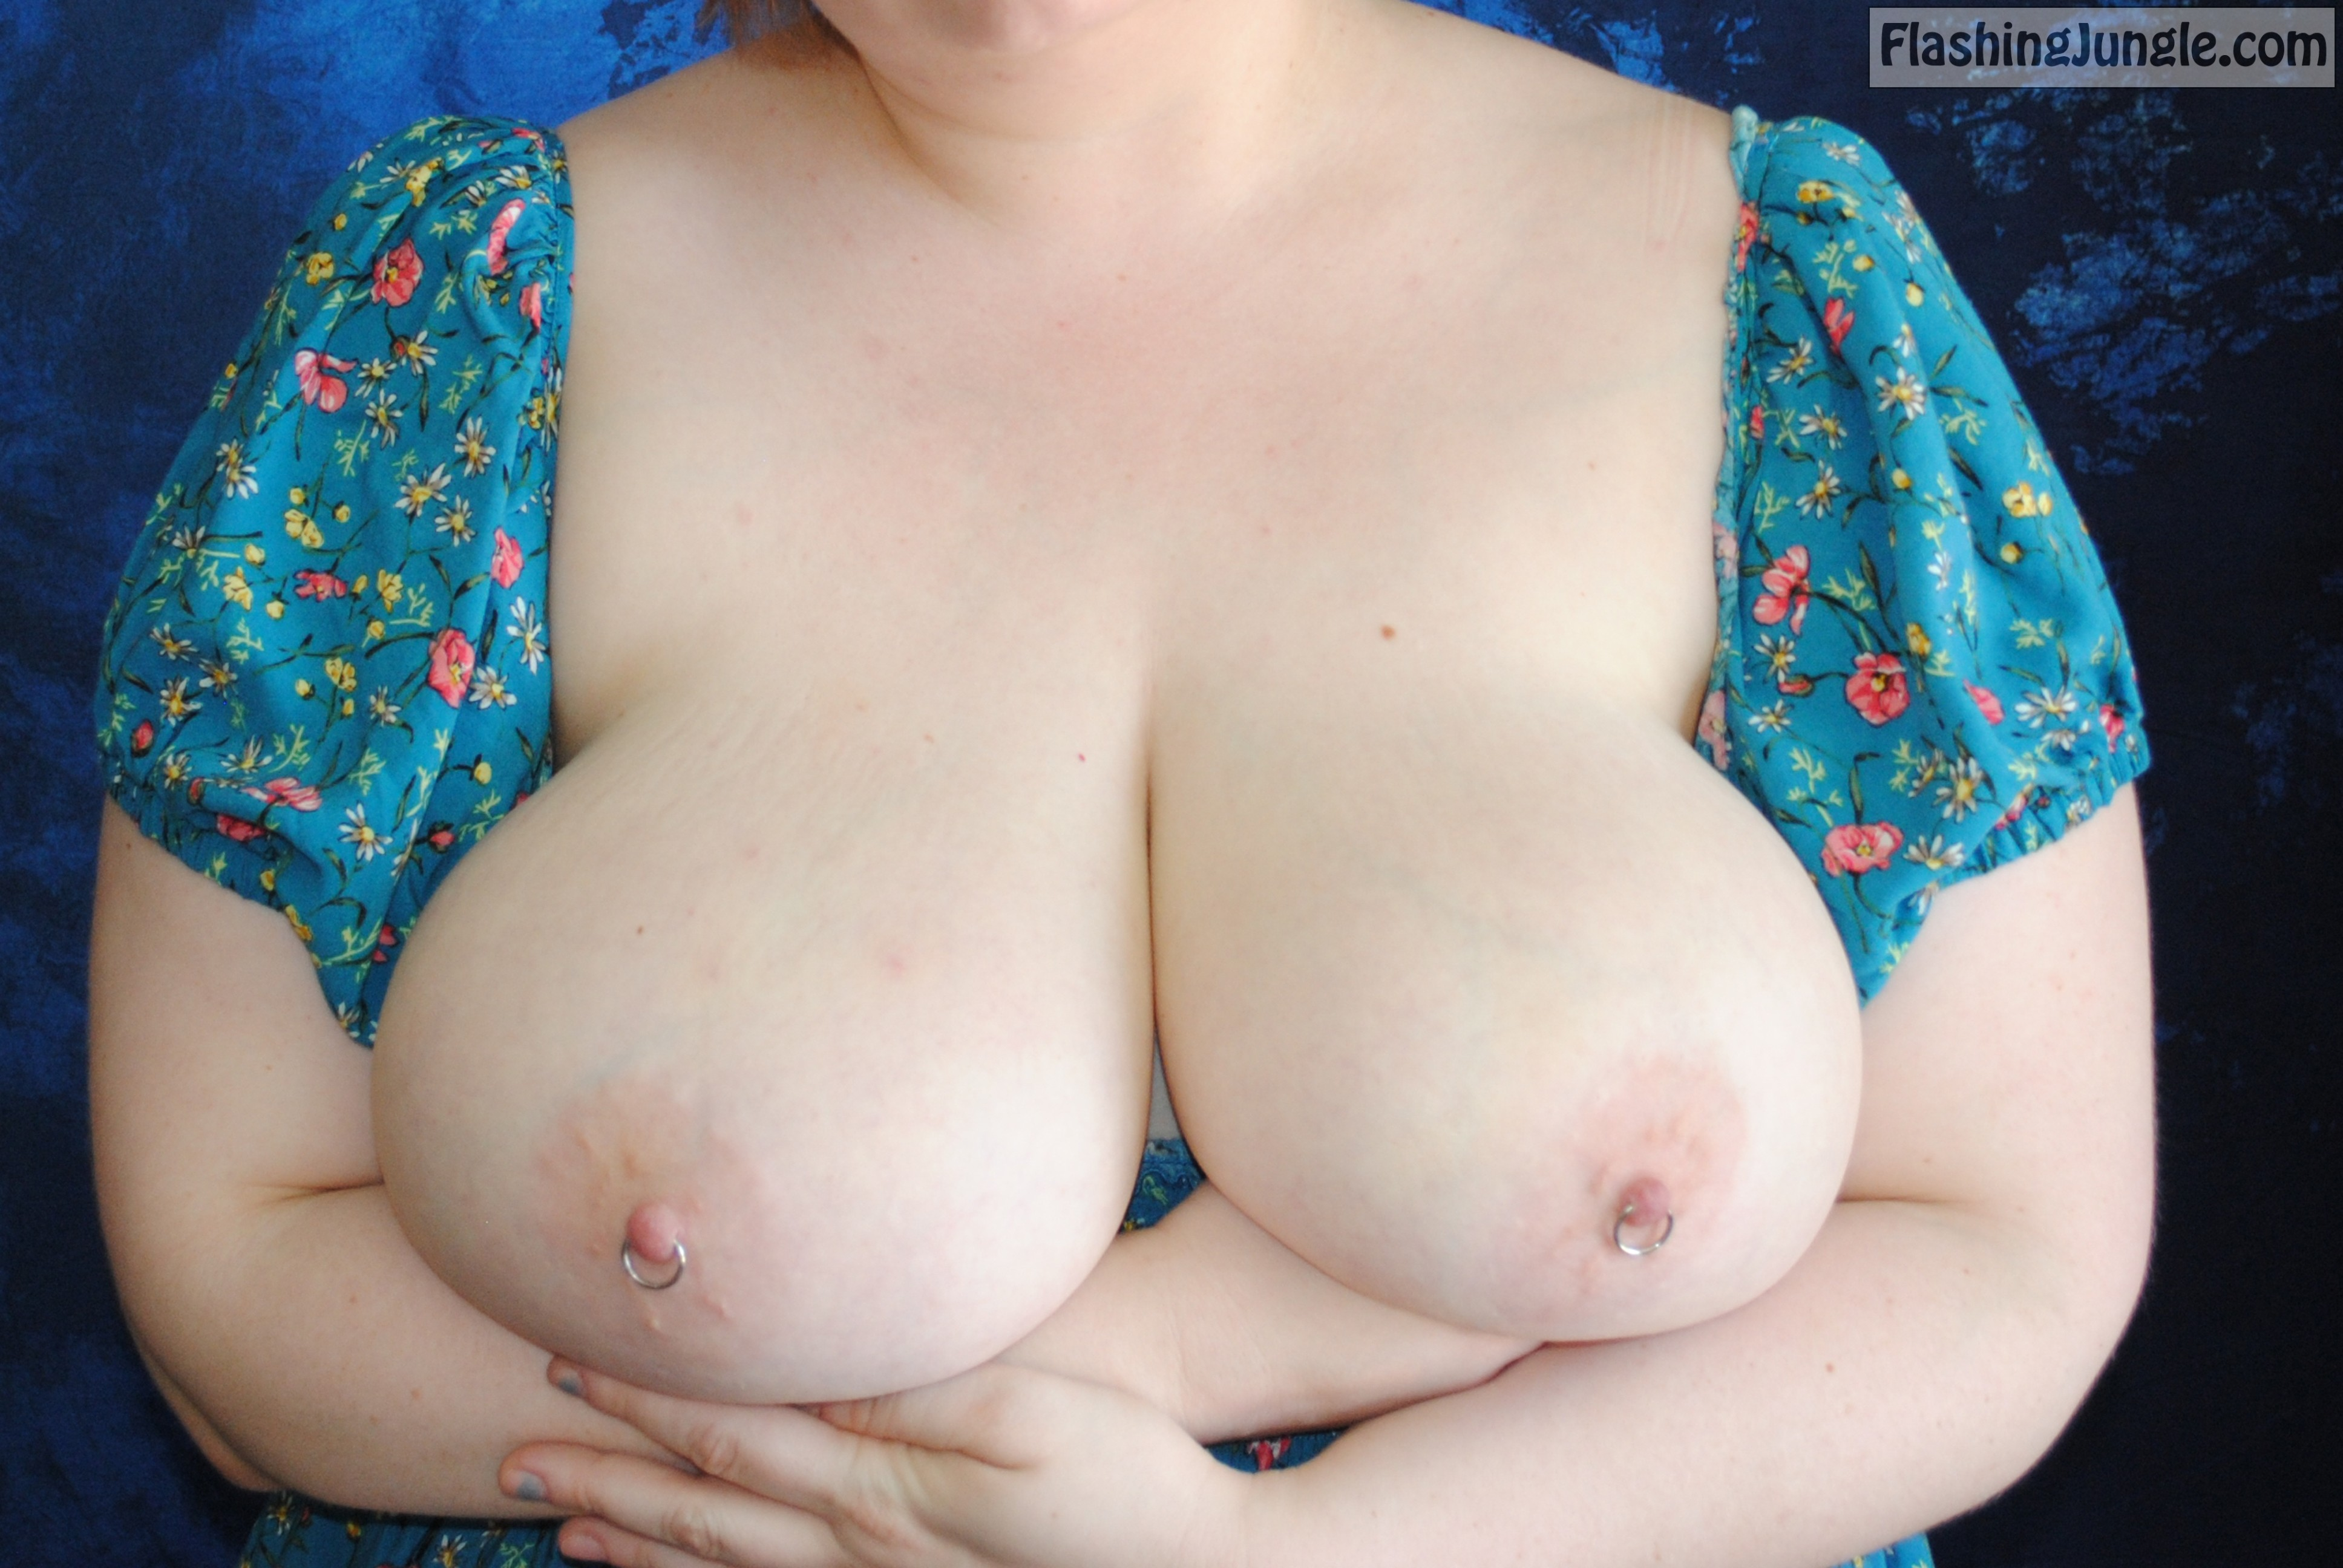 Real Nudity MILF Flashing Pics Boobs Flash Pics